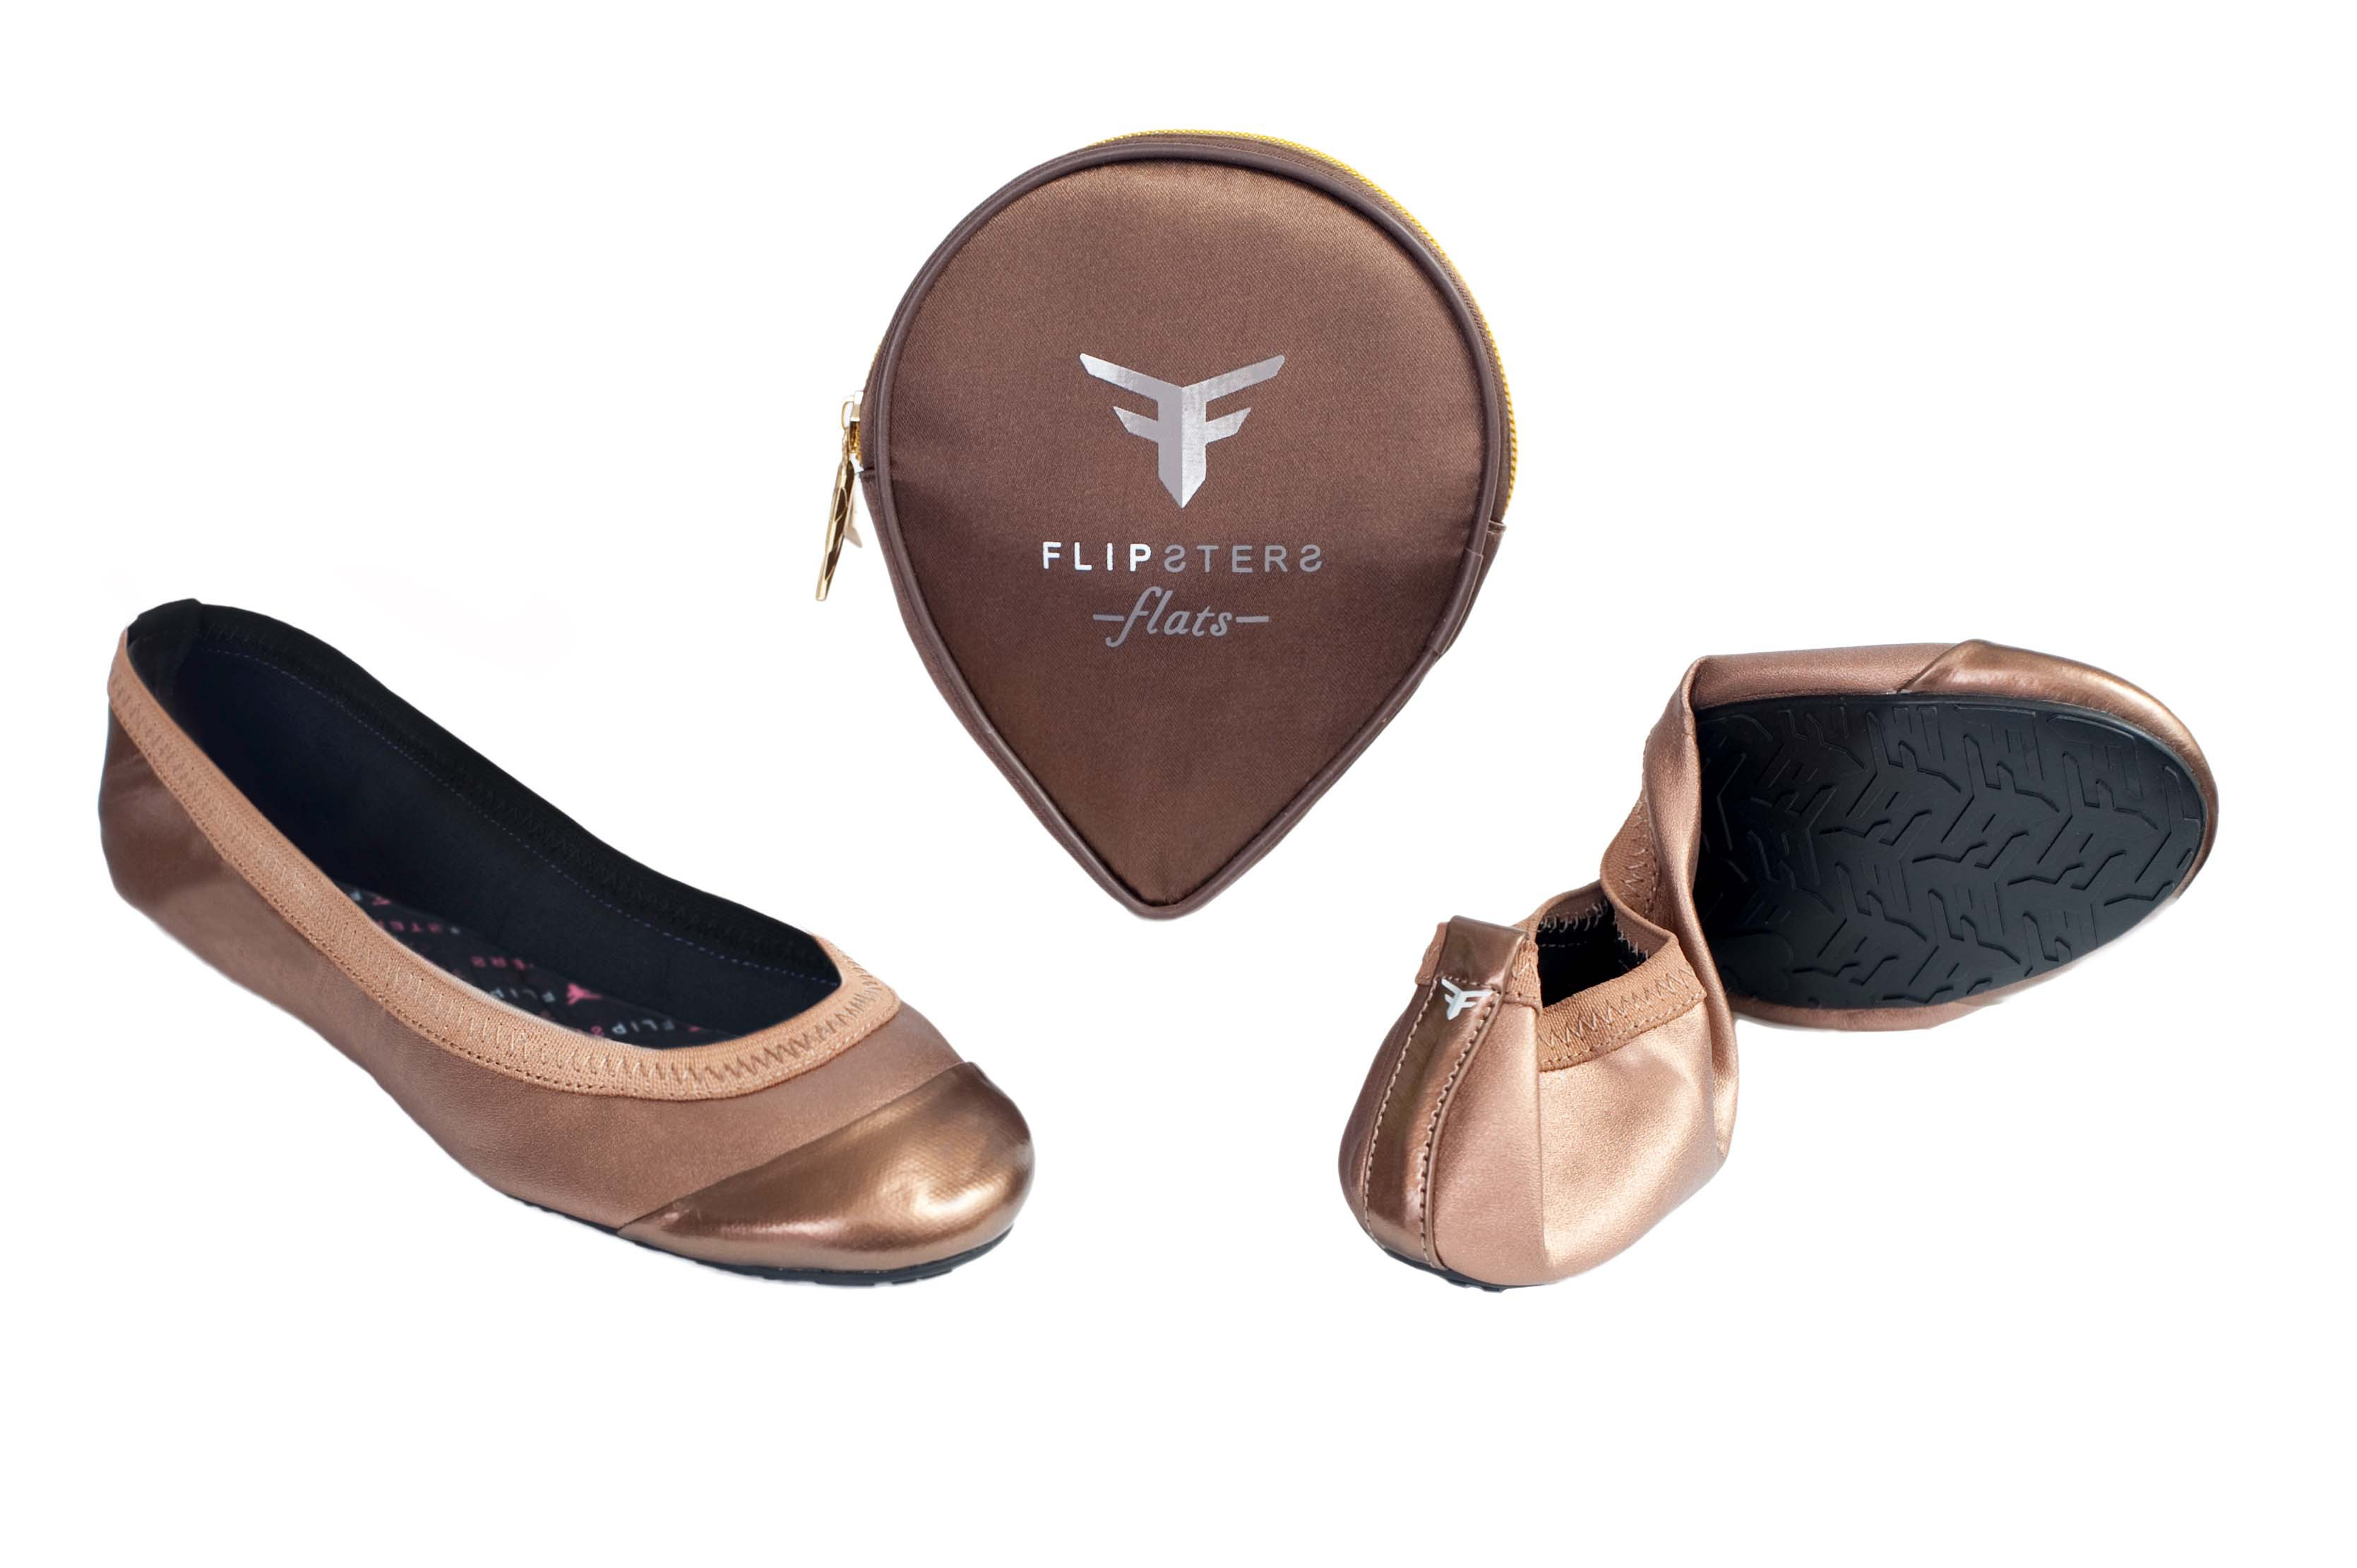 ded8e322c Exclusive  30% off everything at Flipsters foldable shoes! - Shoes ...